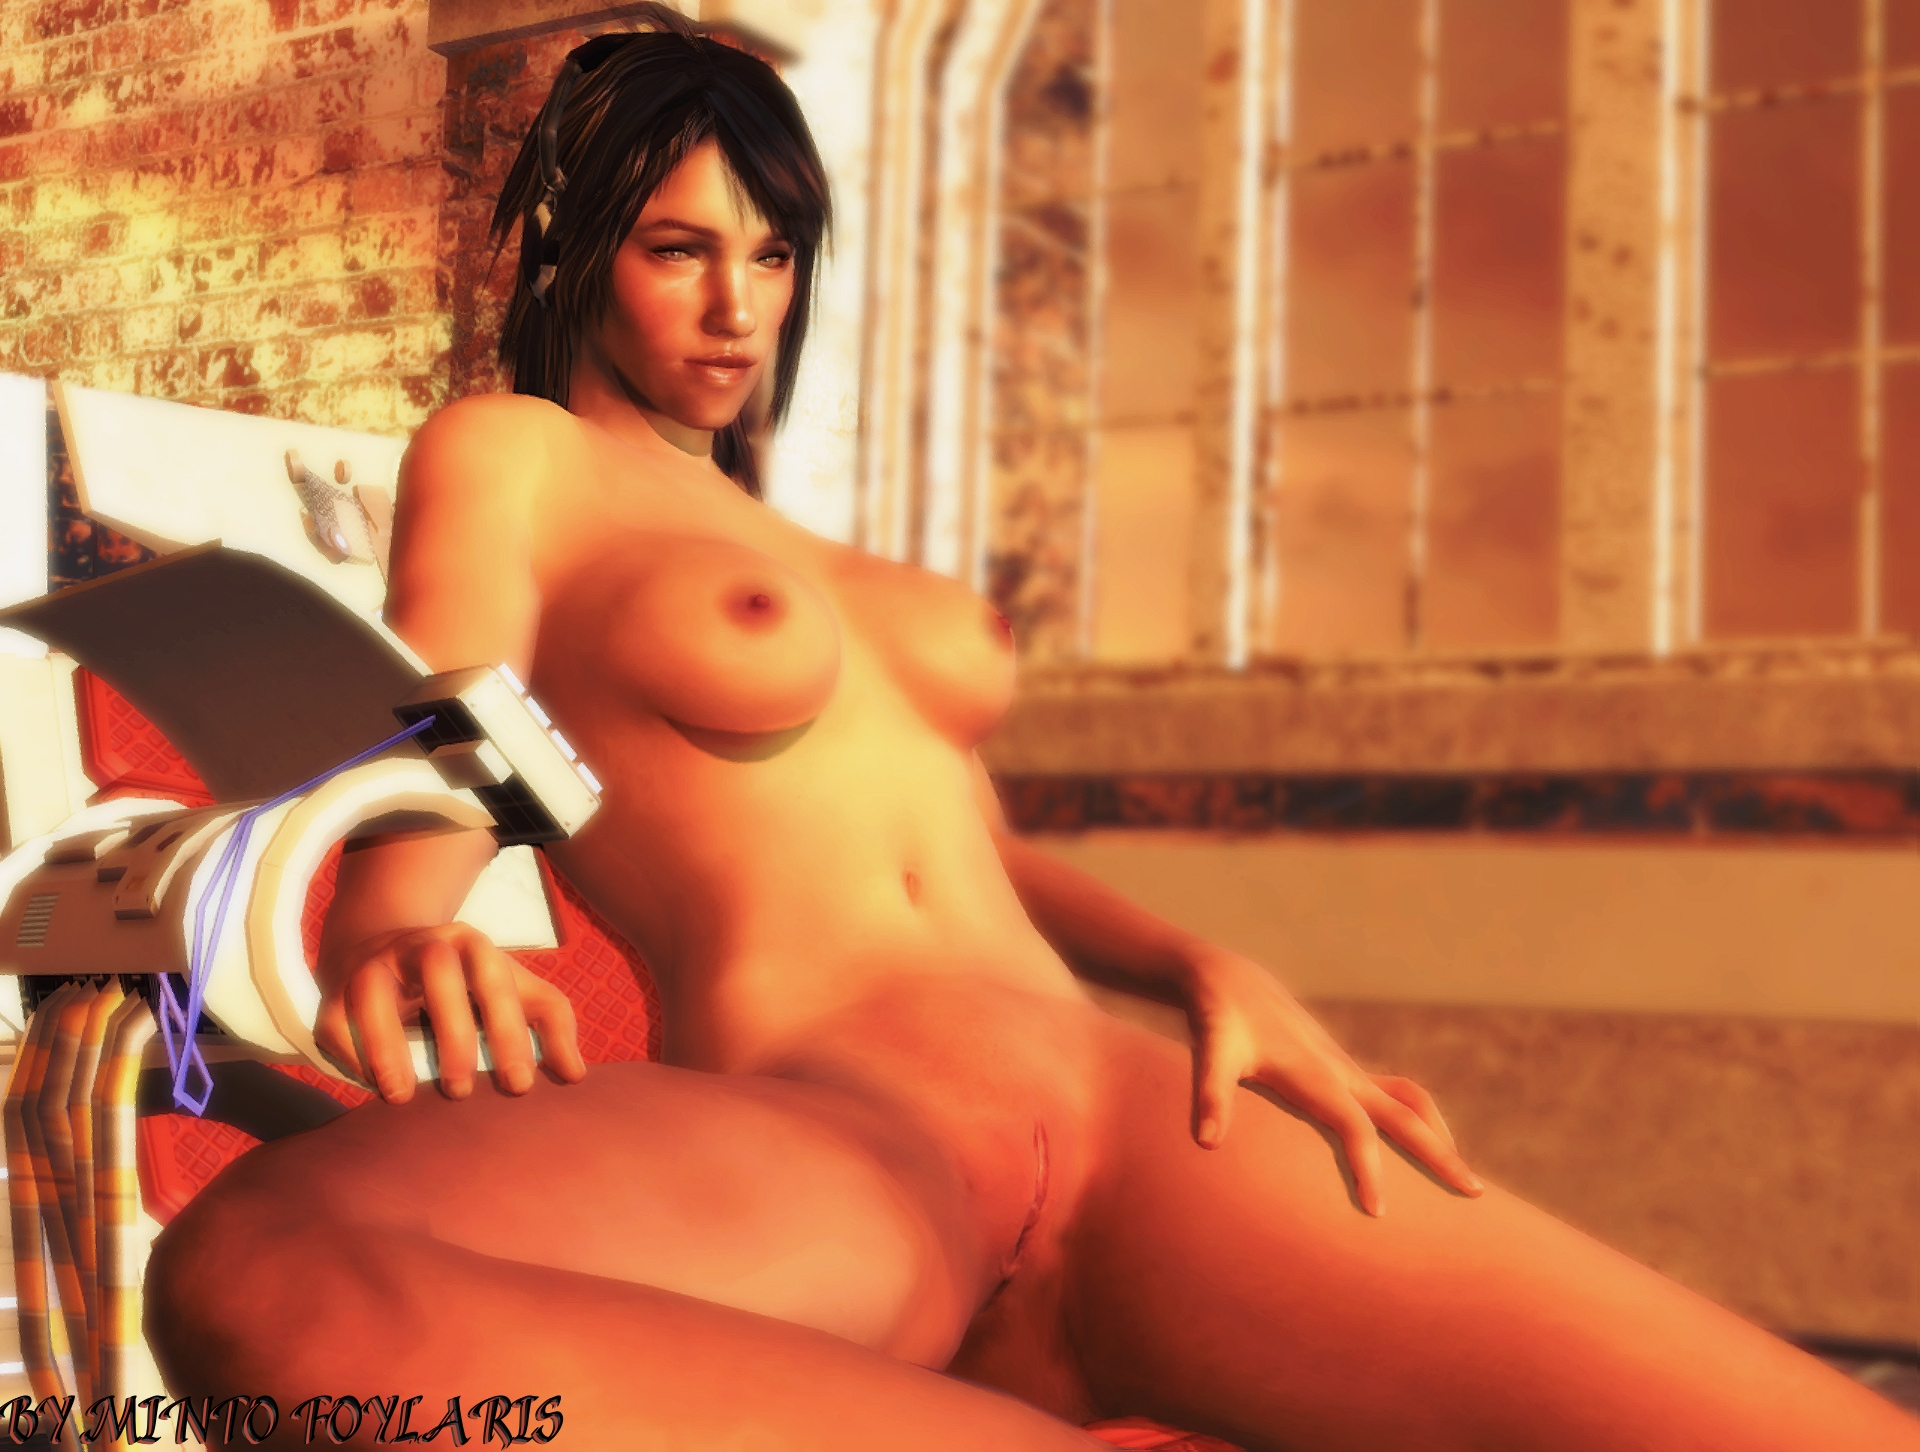 Assassin creed naked female porn hentai photo